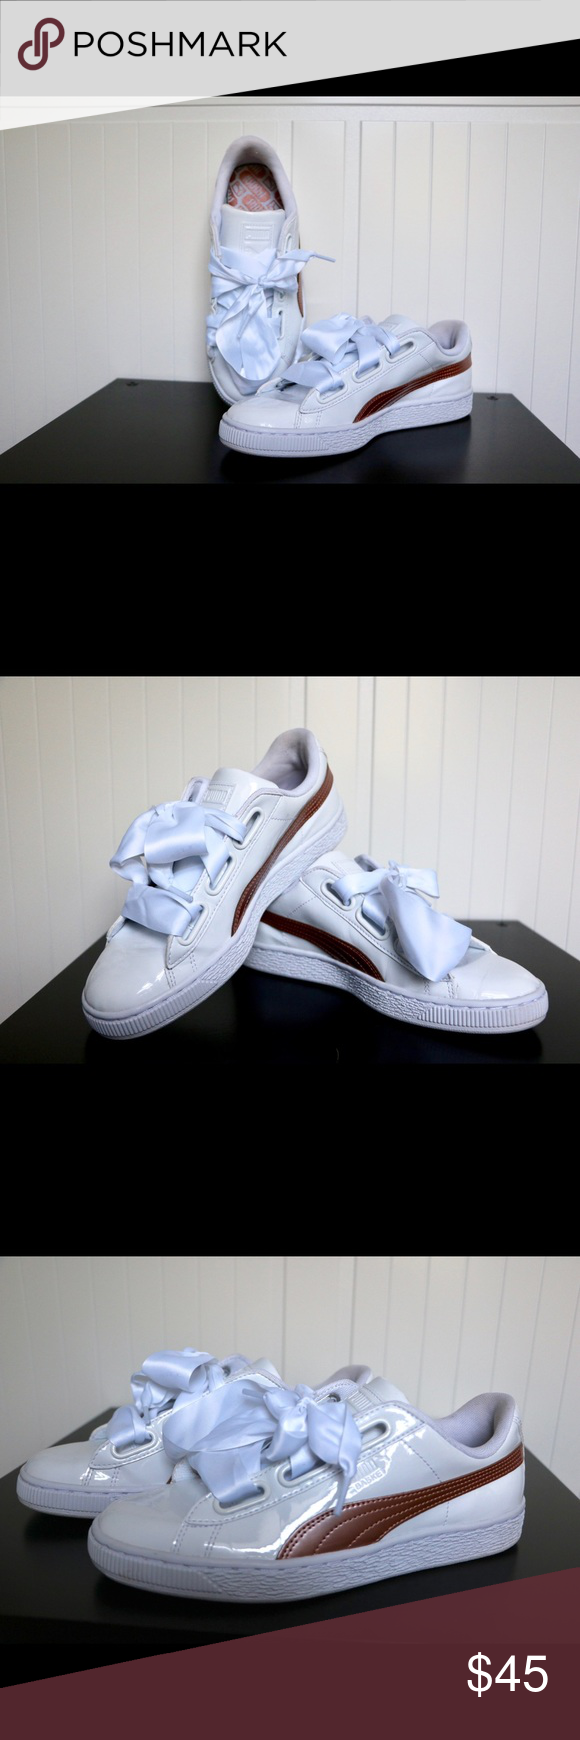 Womens Puma basket heart patent whitecopper